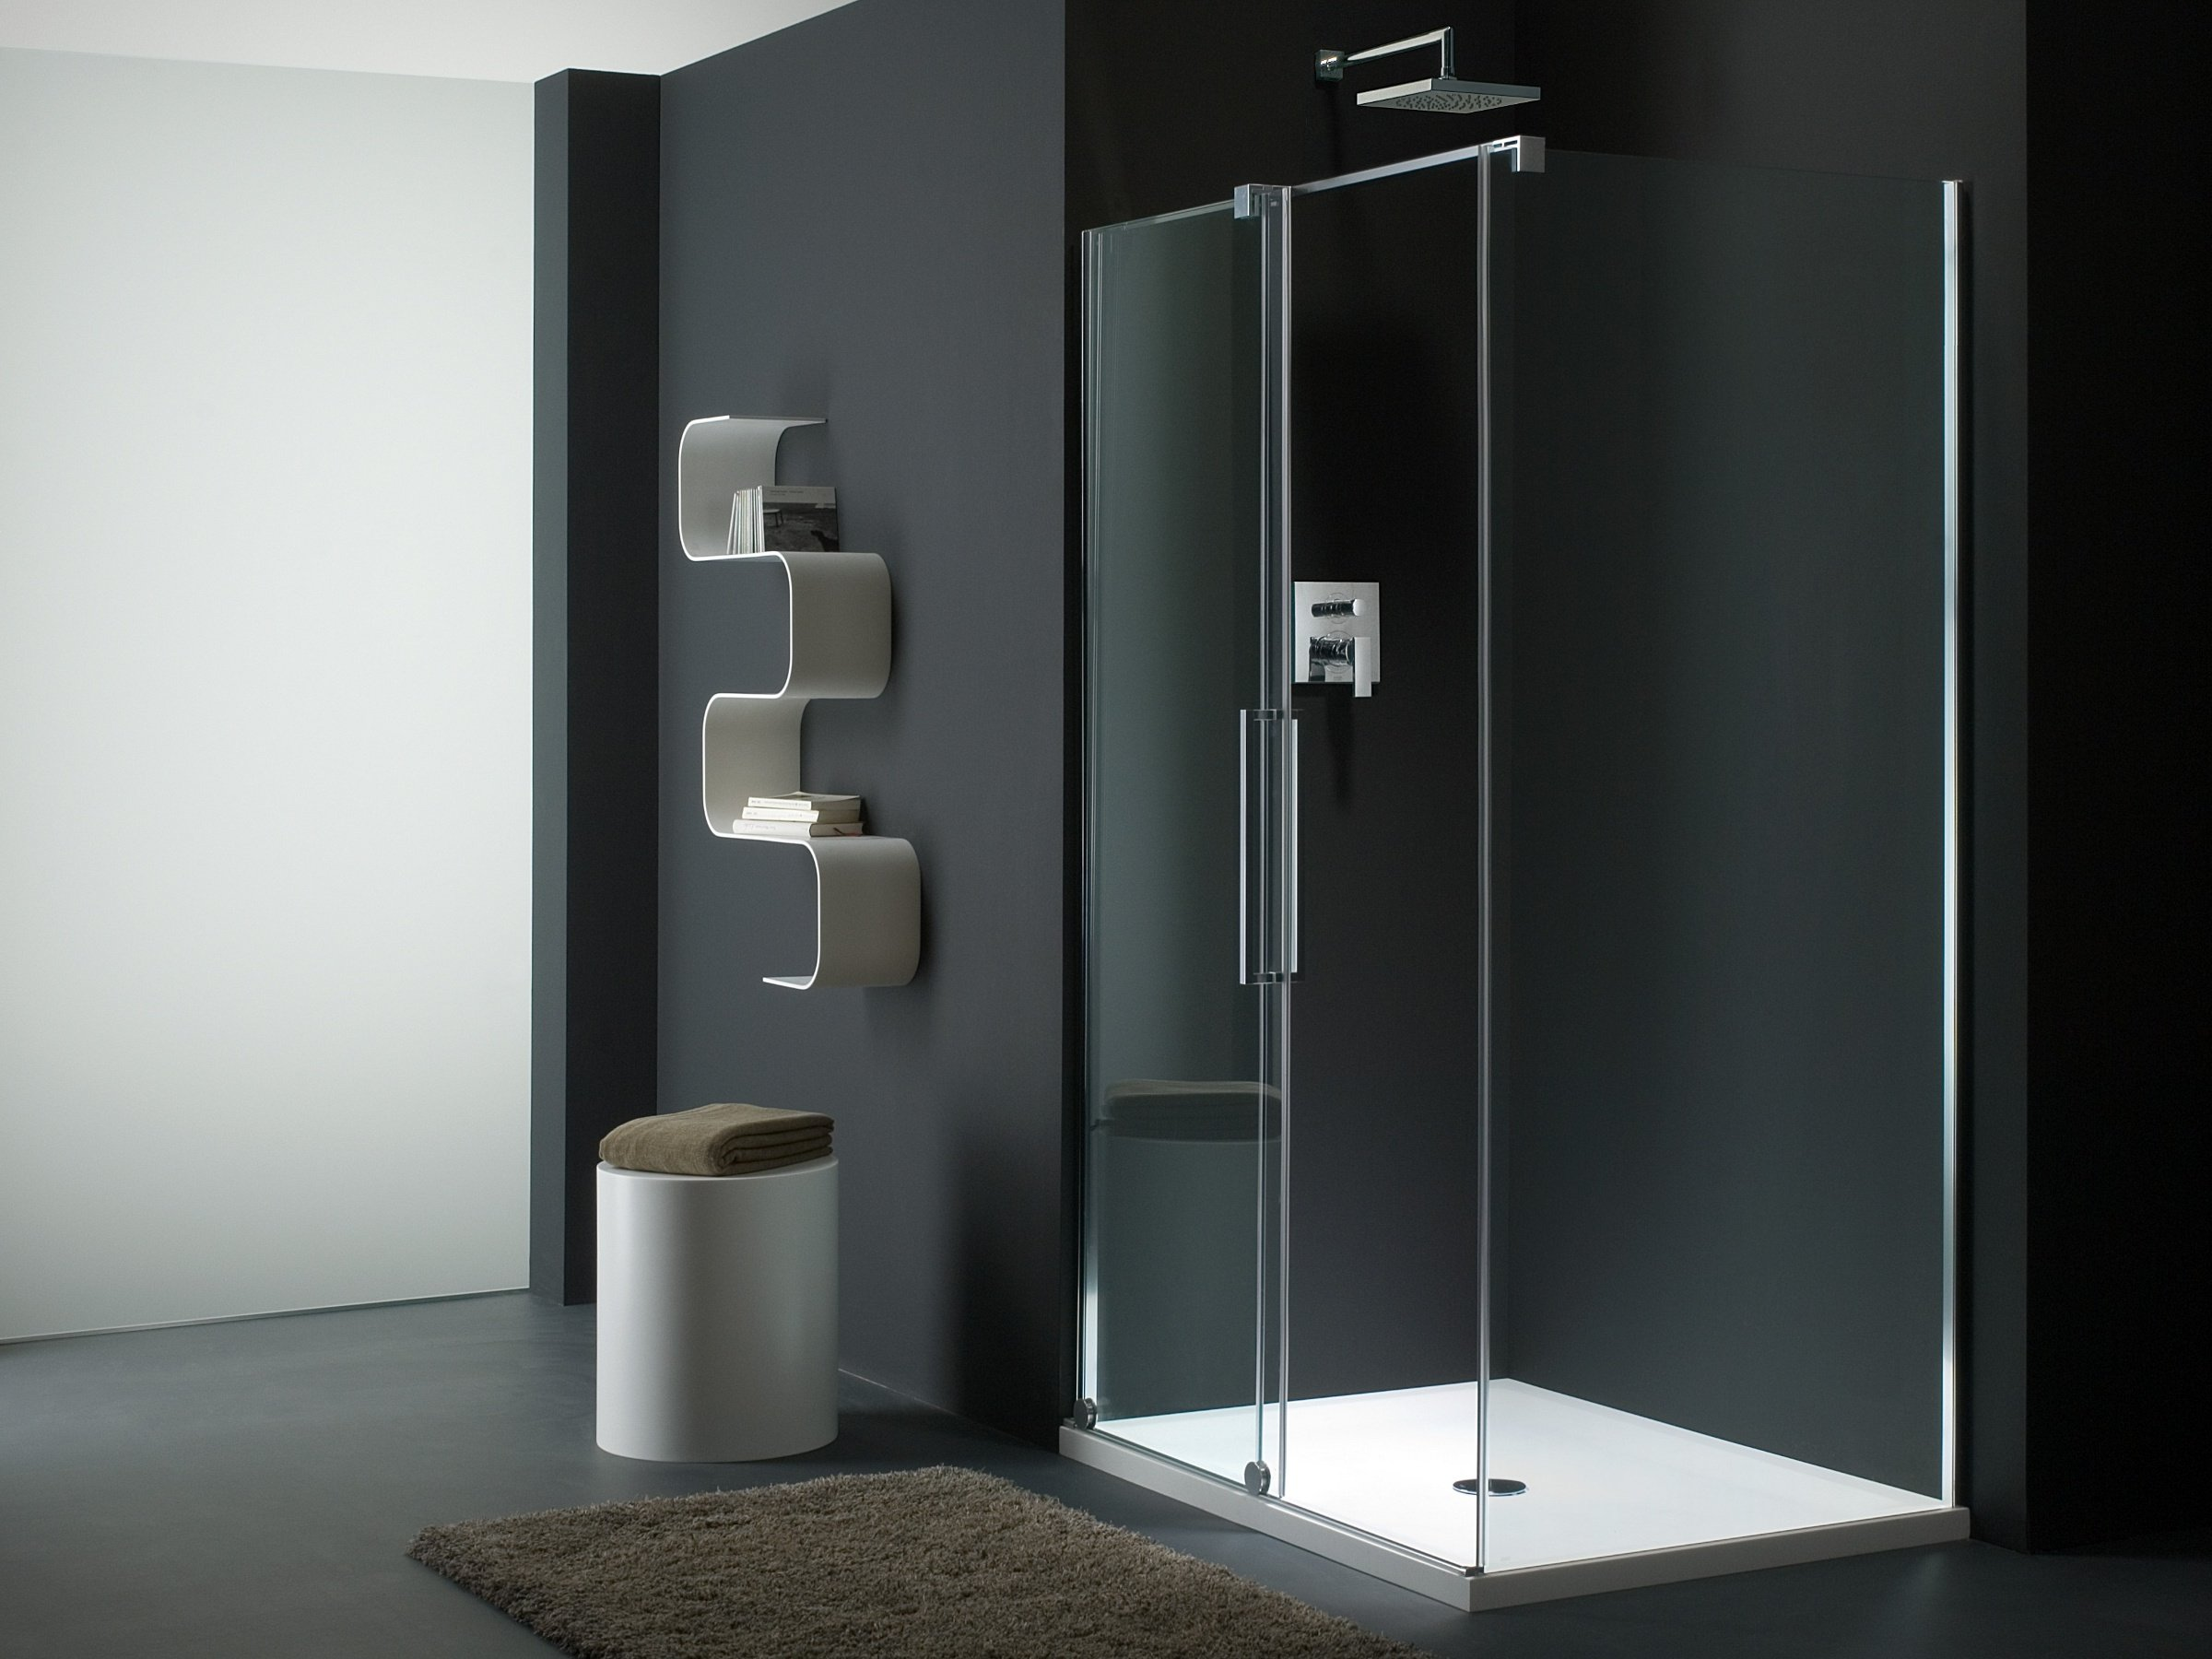 cabine de douche en verre portes coulissantes s lite sn sw by provex industrie design. Black Bedroom Furniture Sets. Home Design Ideas